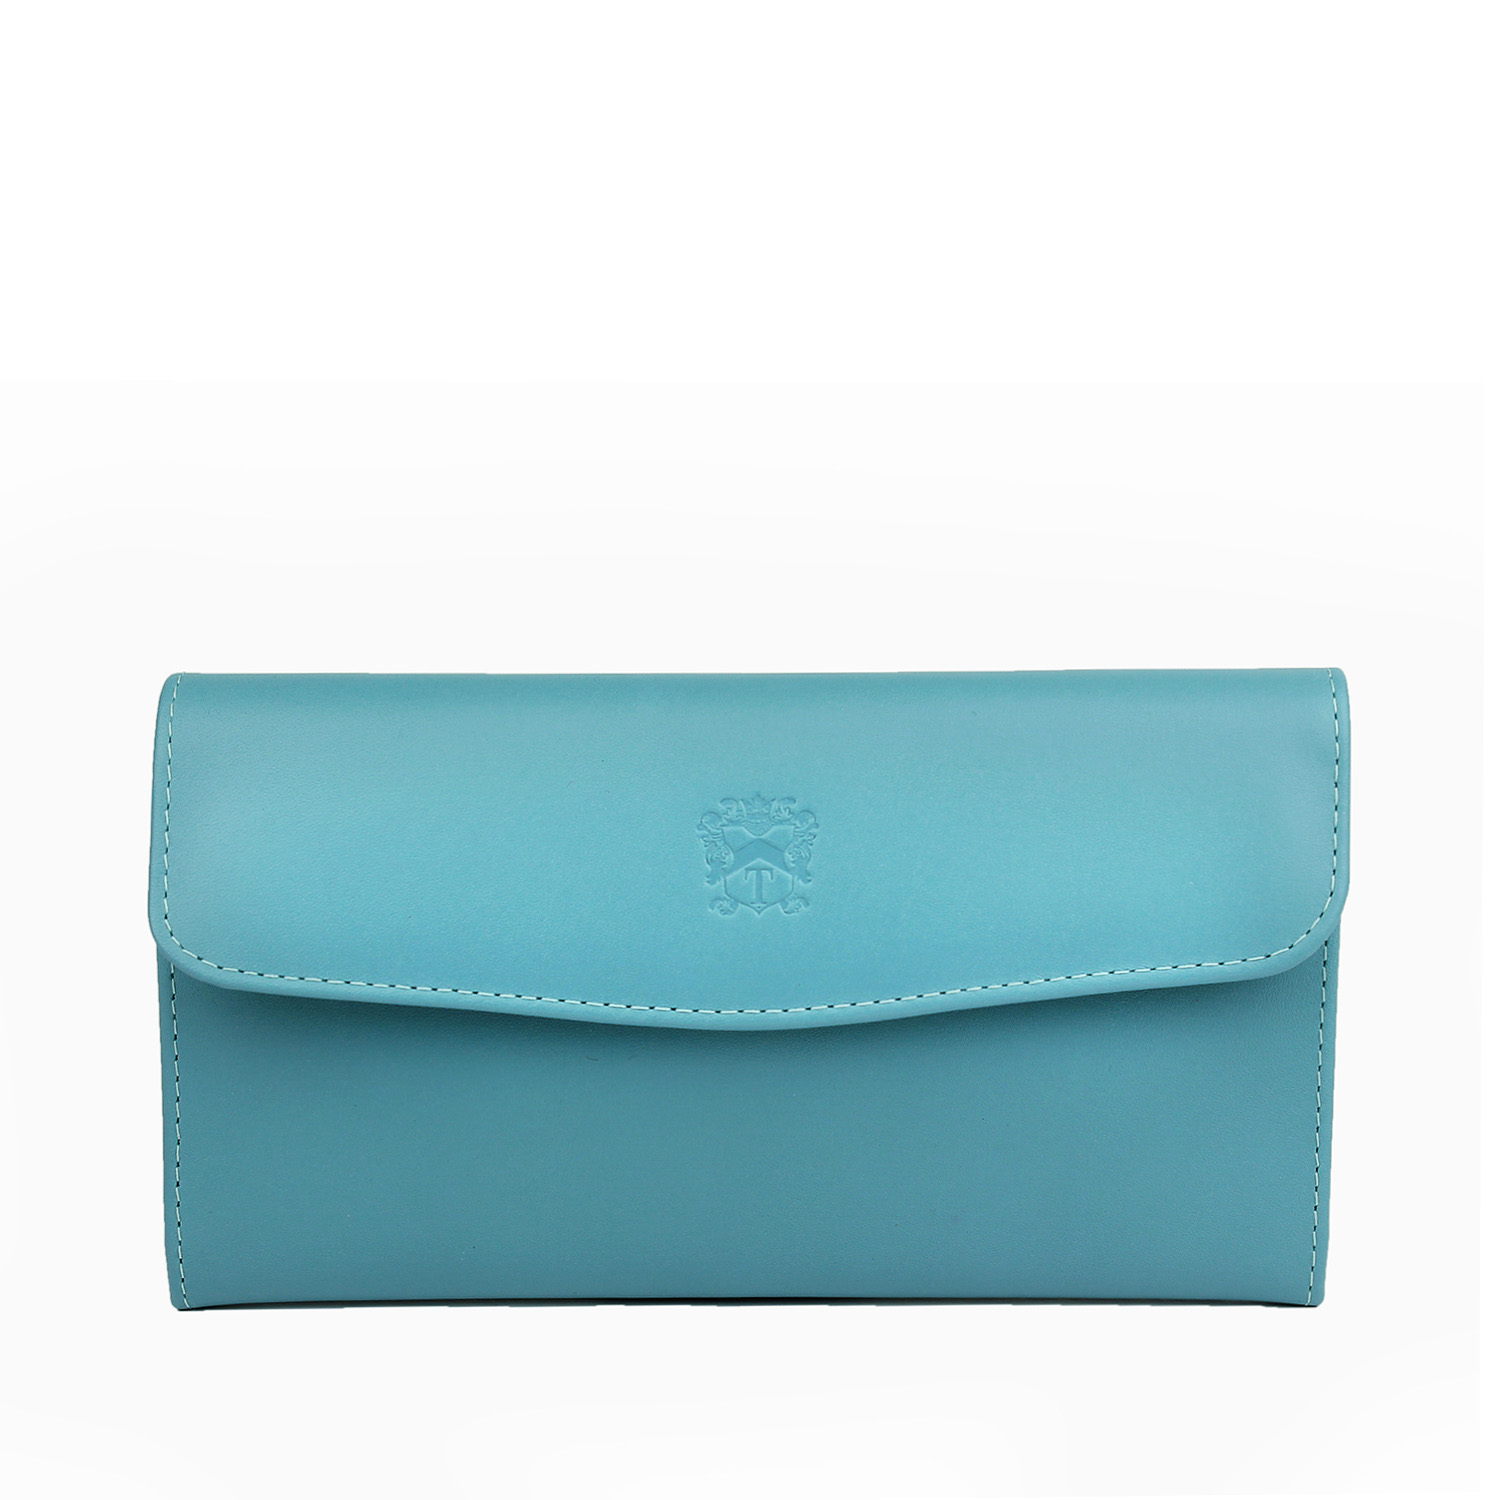 The Tusting Fold Purse in delicious pale Honeydon Blue